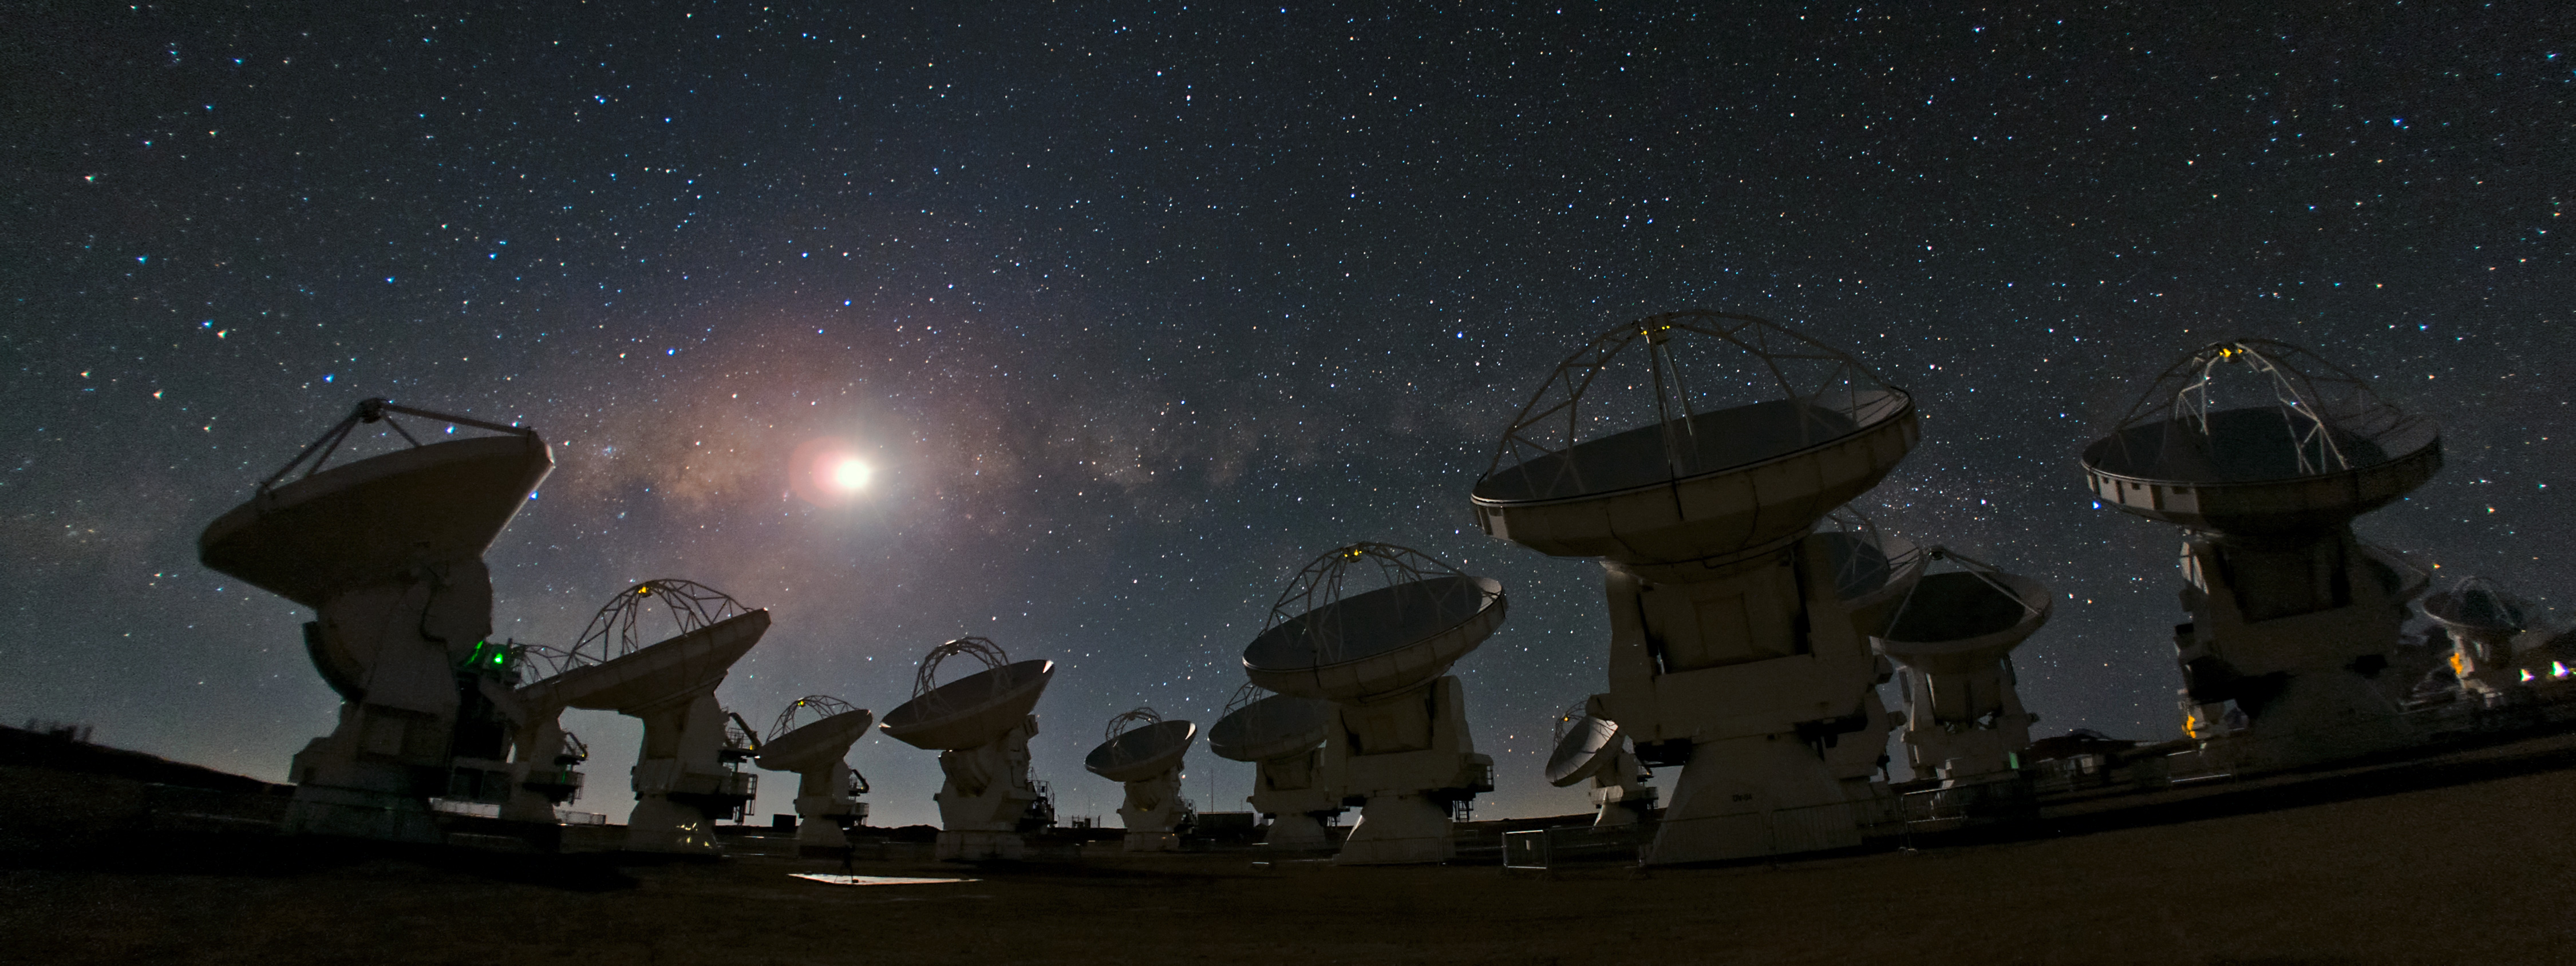 ALMA gives 125.7 hours to the Astronomy Nucleus to understand how the youngest planets and the oldest galaxies form.